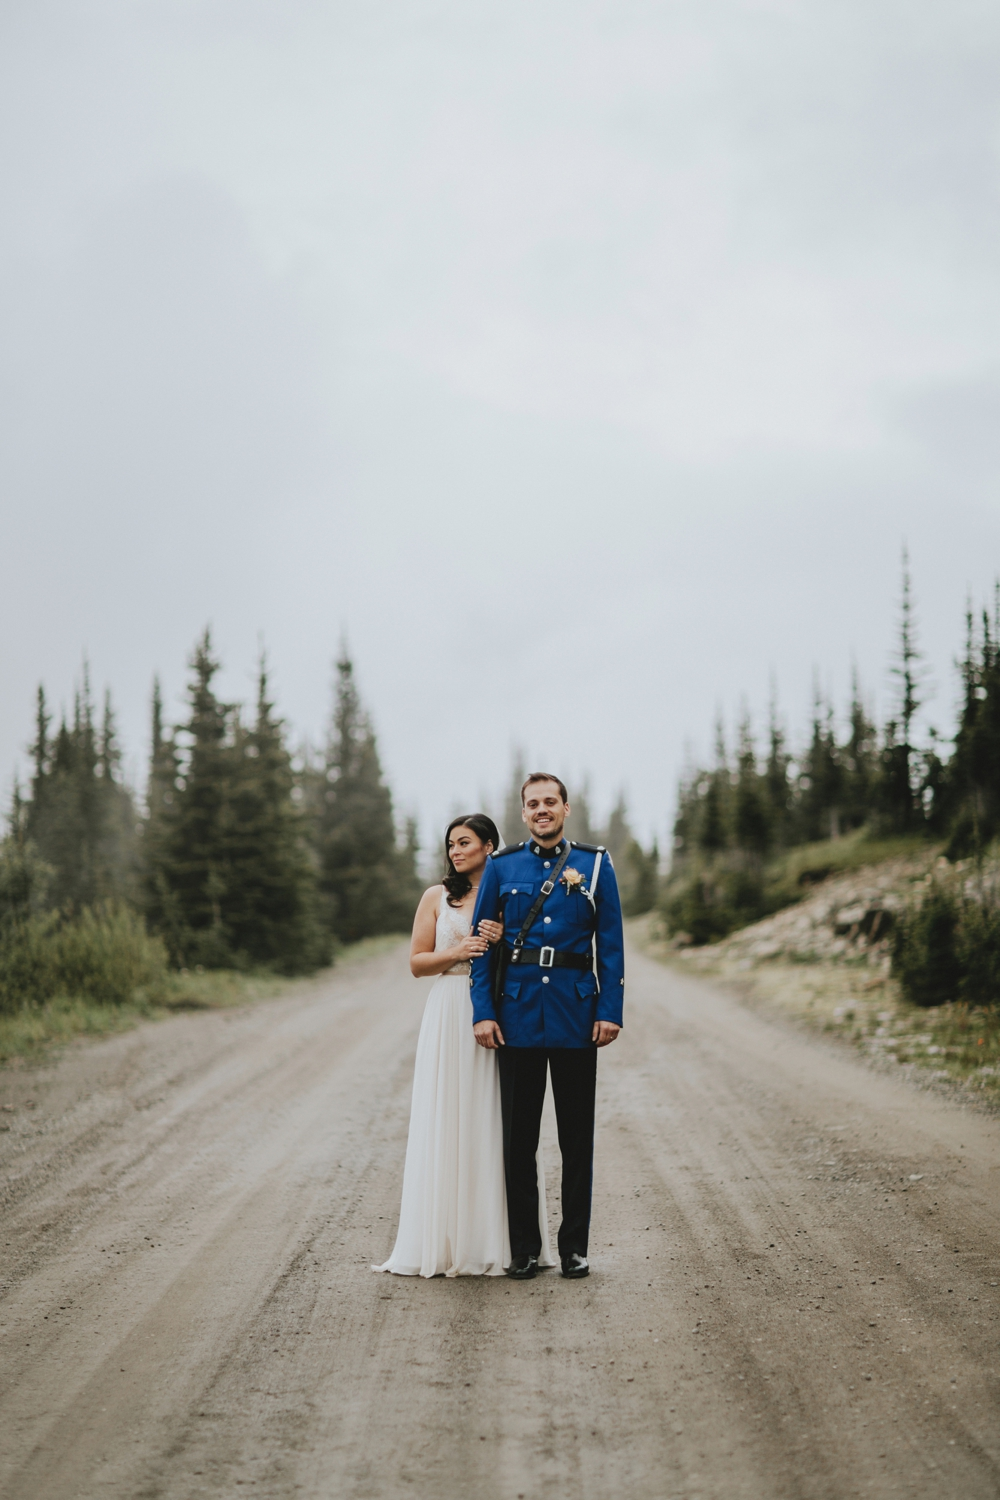 Danaea-Li-Photography-manning-park-wedding_0029.jpg